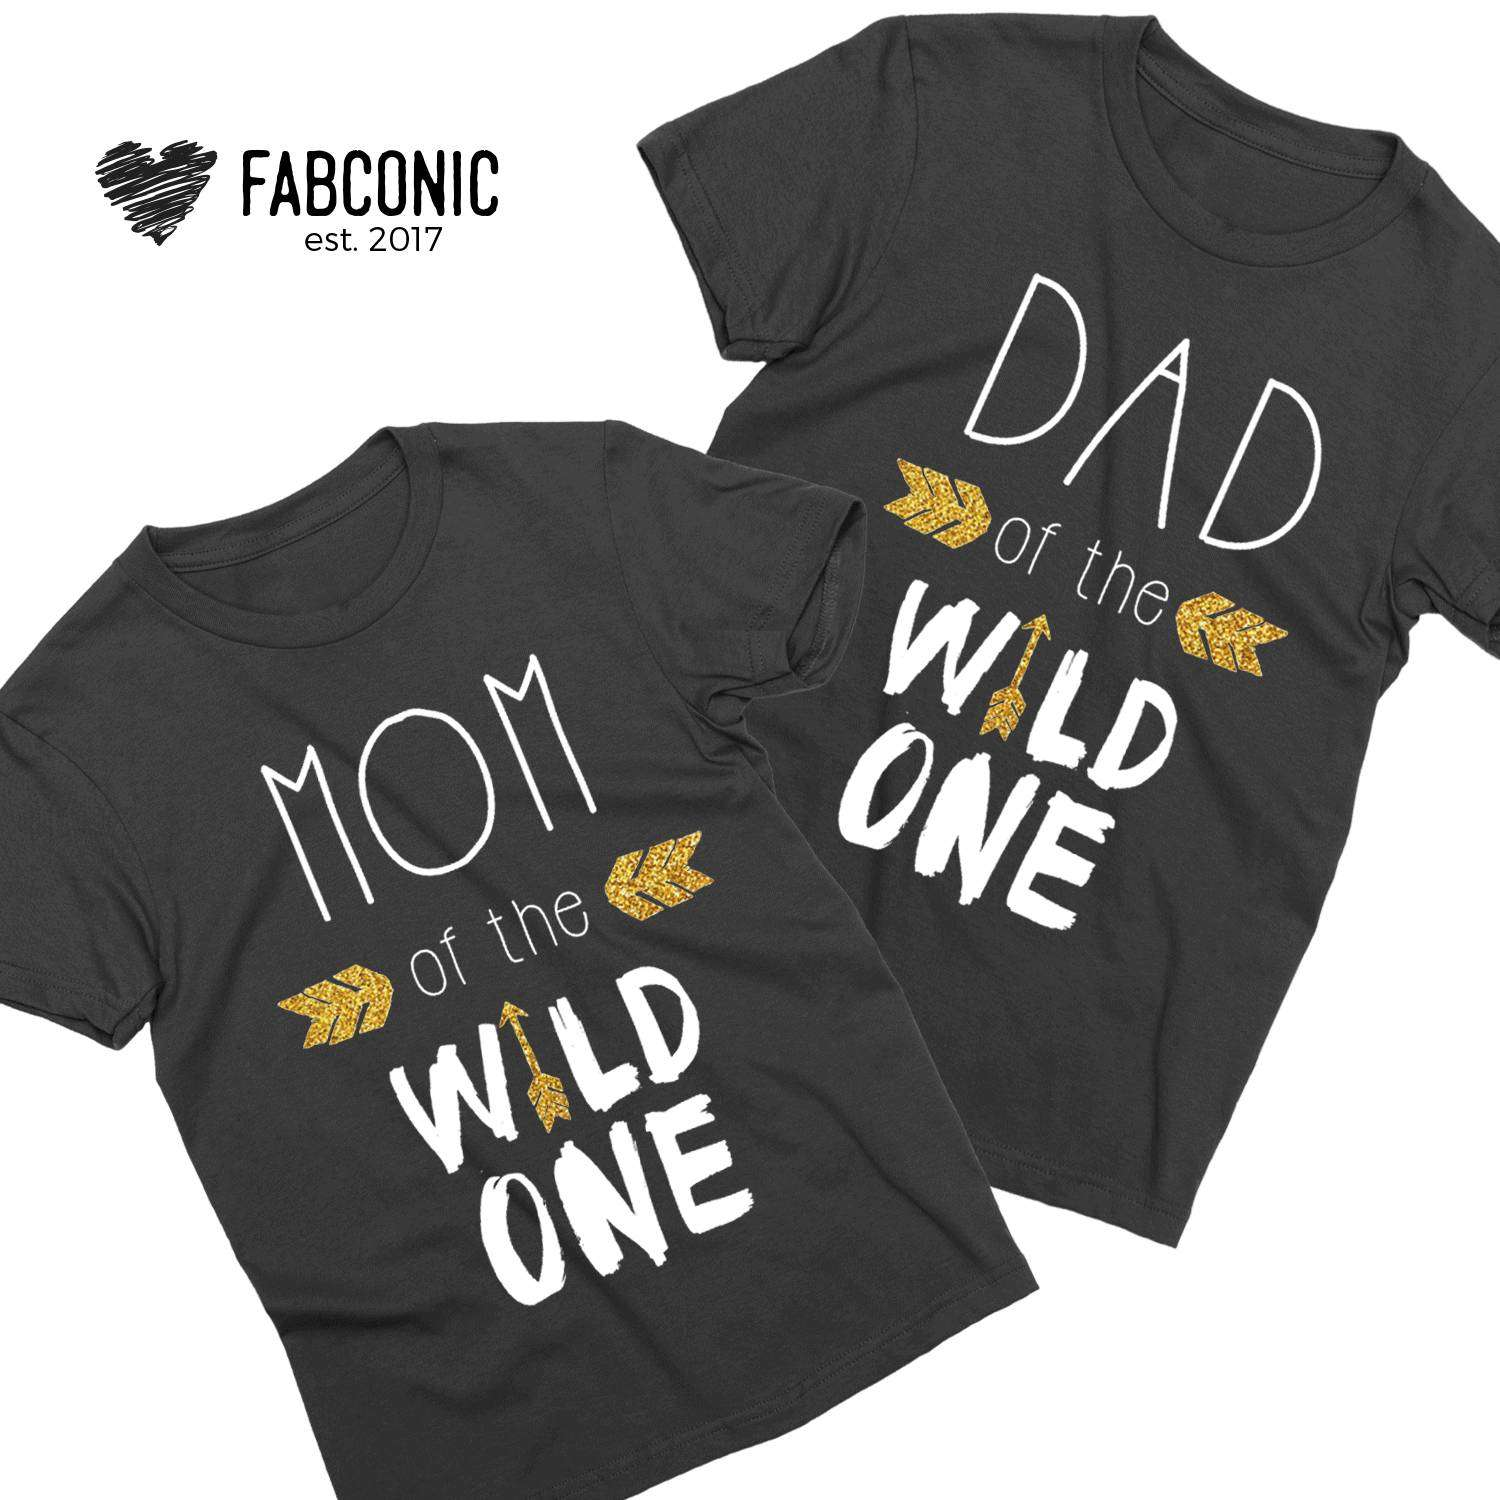 7b1f7ae1 Dad of the Wild One, Mom of the Wild One, Family Shirts - Fabconic